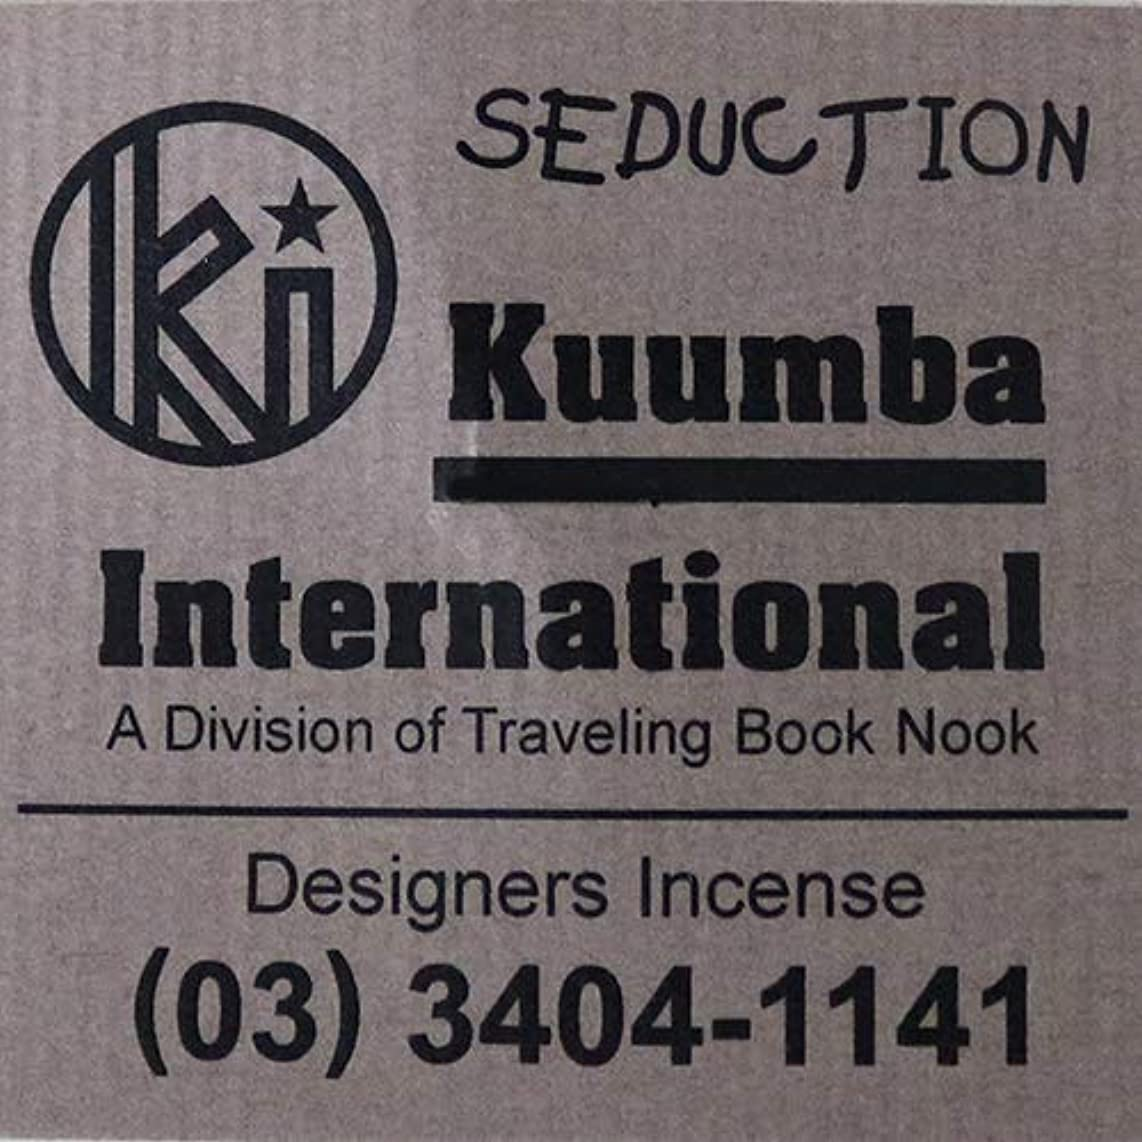 並外れた節約する第二に(クンバ) KUUMBA『incense』(SEDUCTION) (SEDUCTION, Regular size)